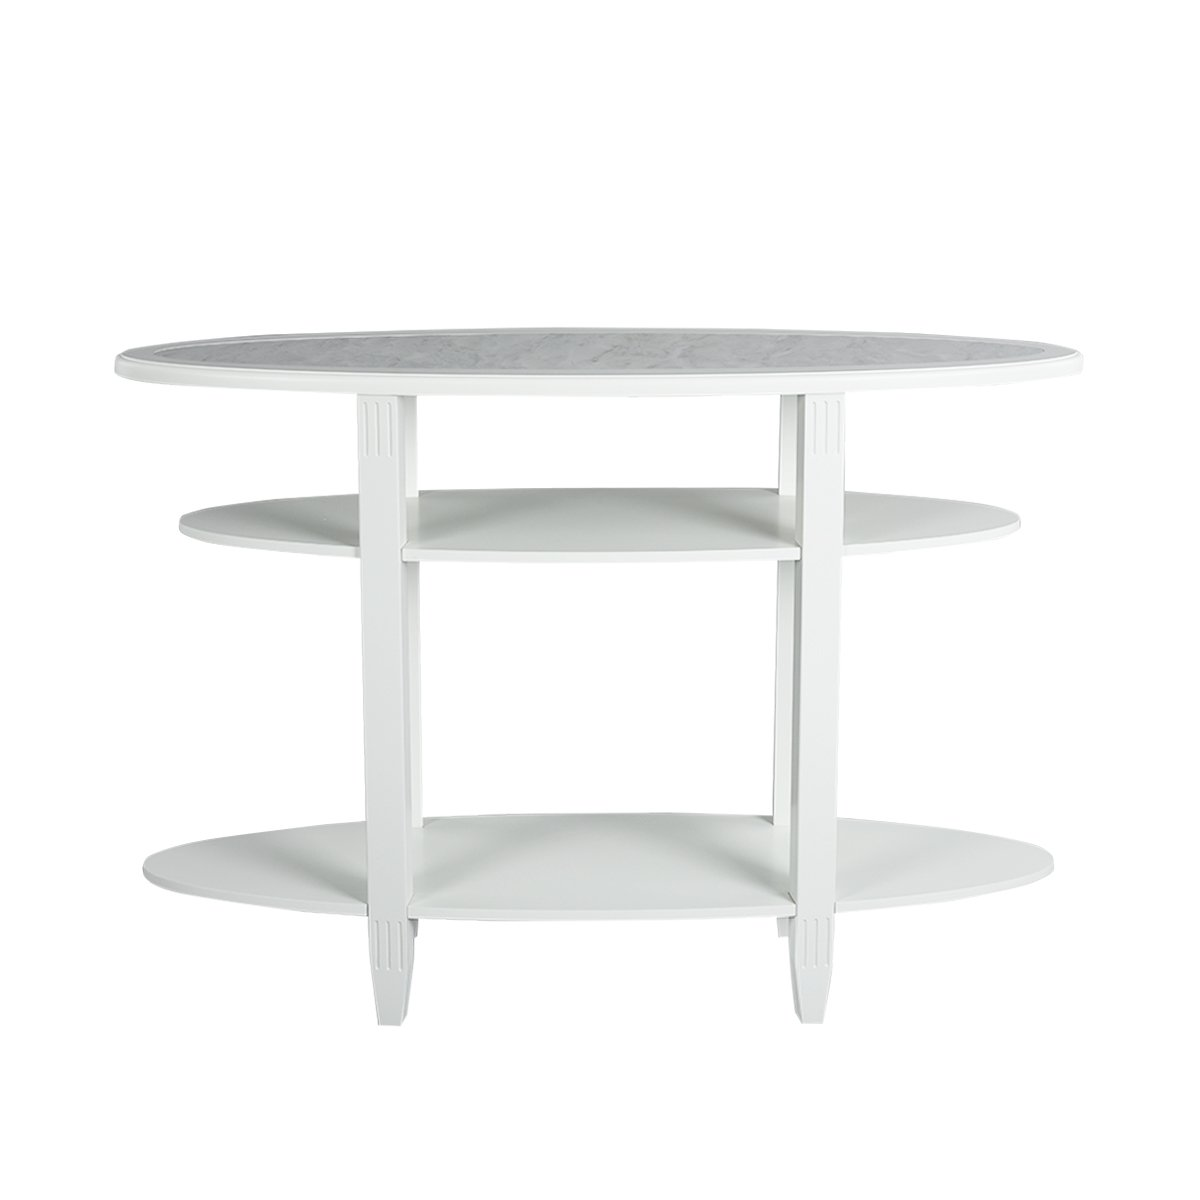 furnish 1 Modern Concise Style 3-Tier Console Table, white